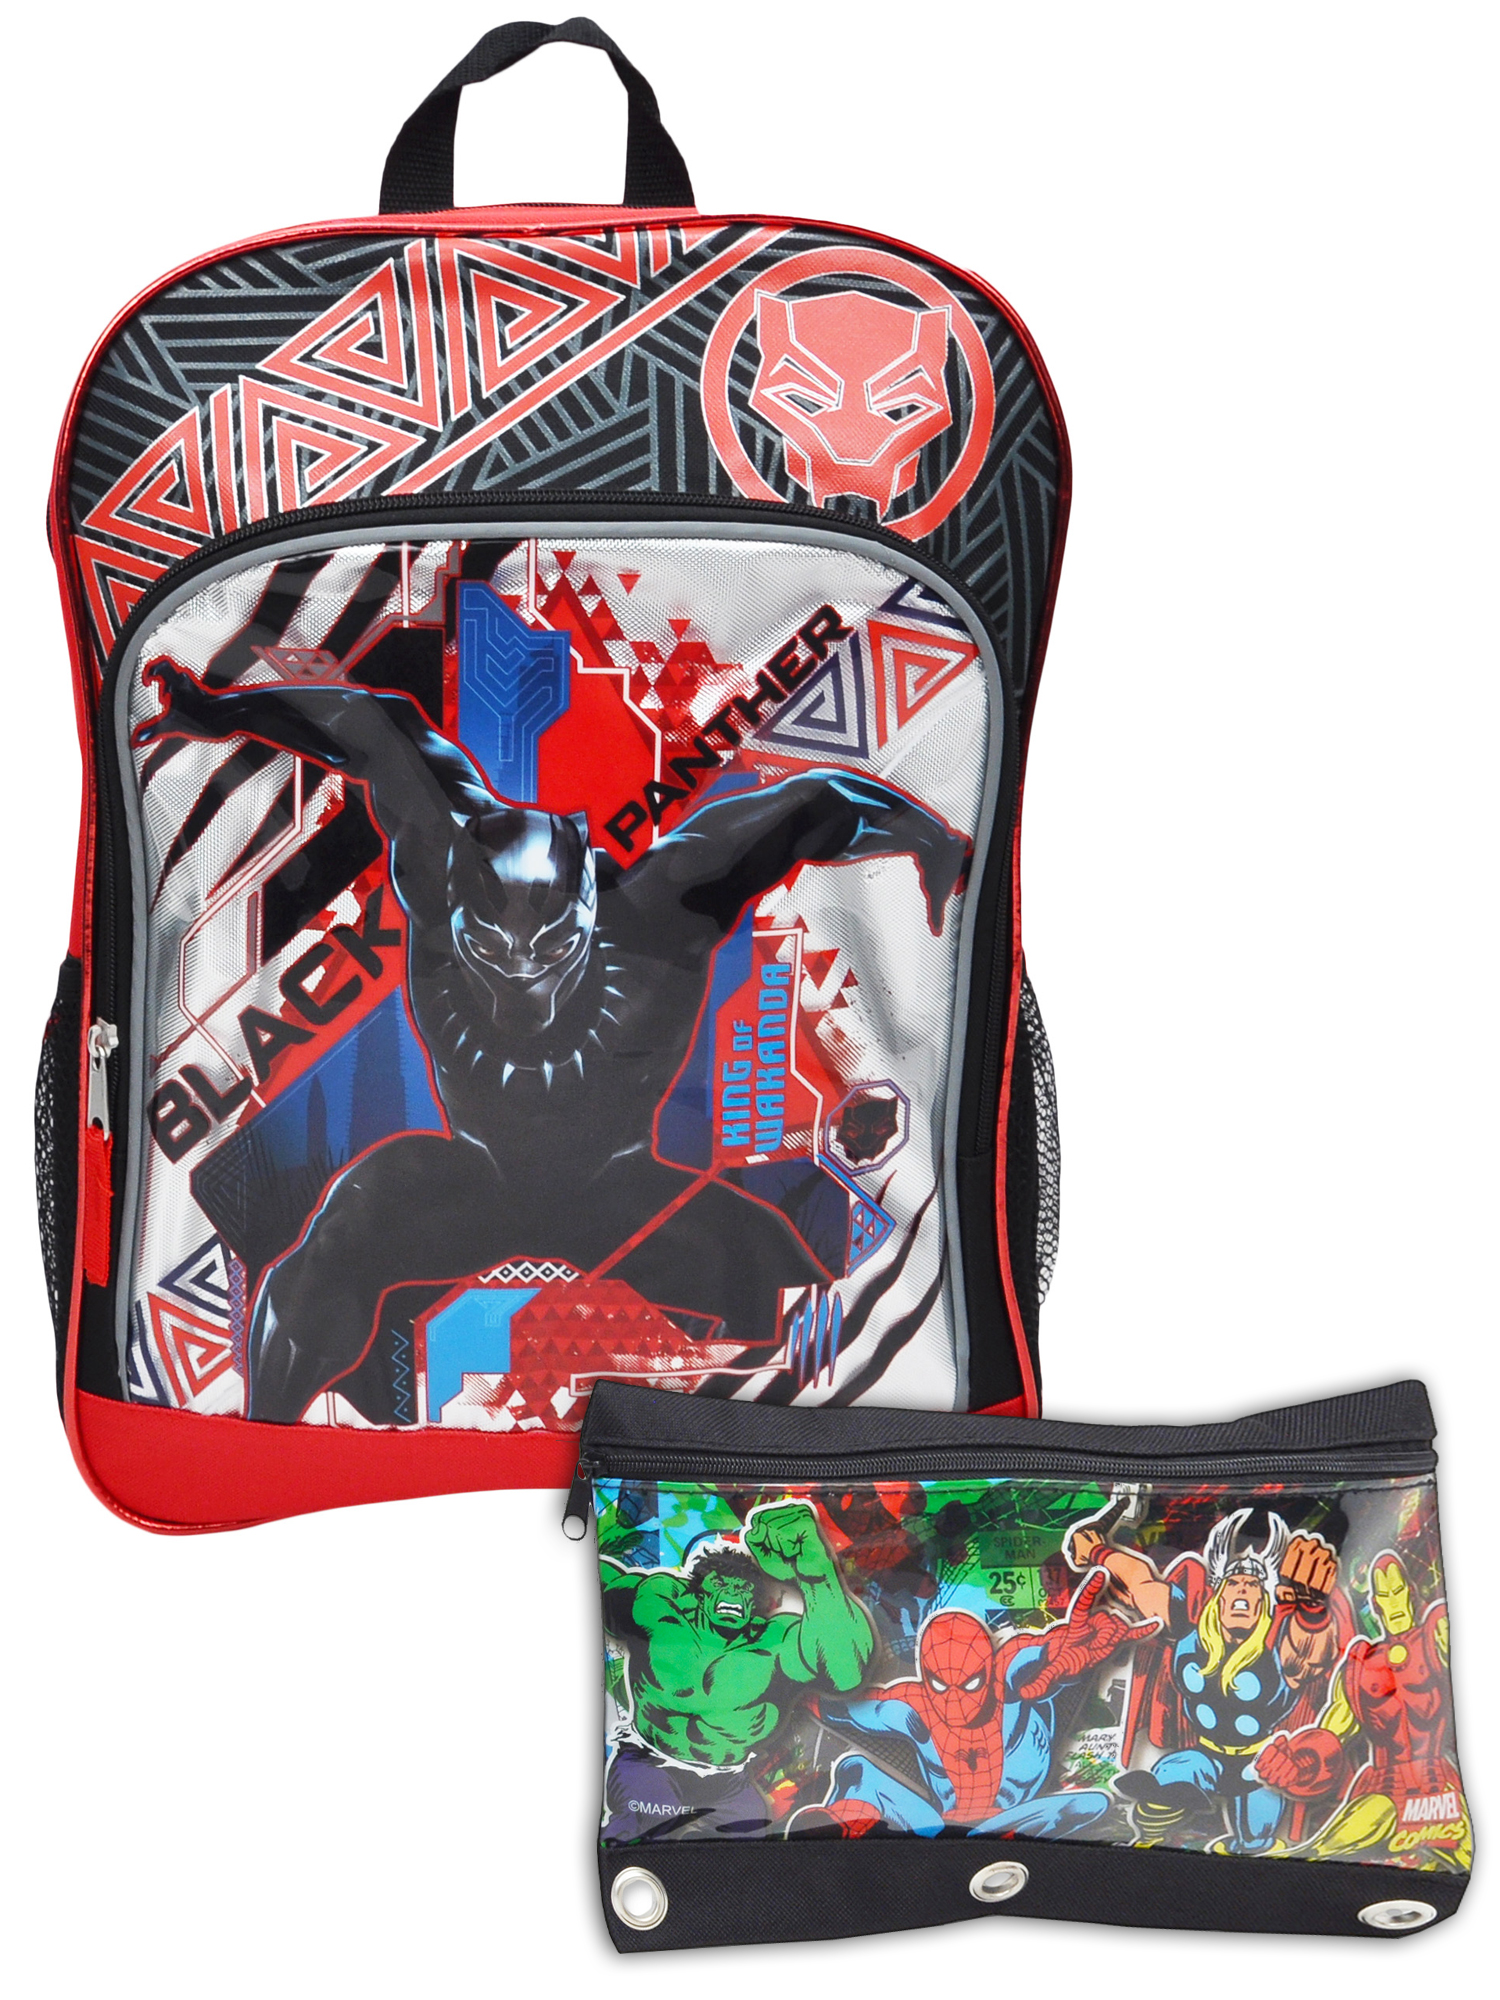 Boys Black Panther Superhero Backpack & 3-Ring Avengers Pencil Pouch